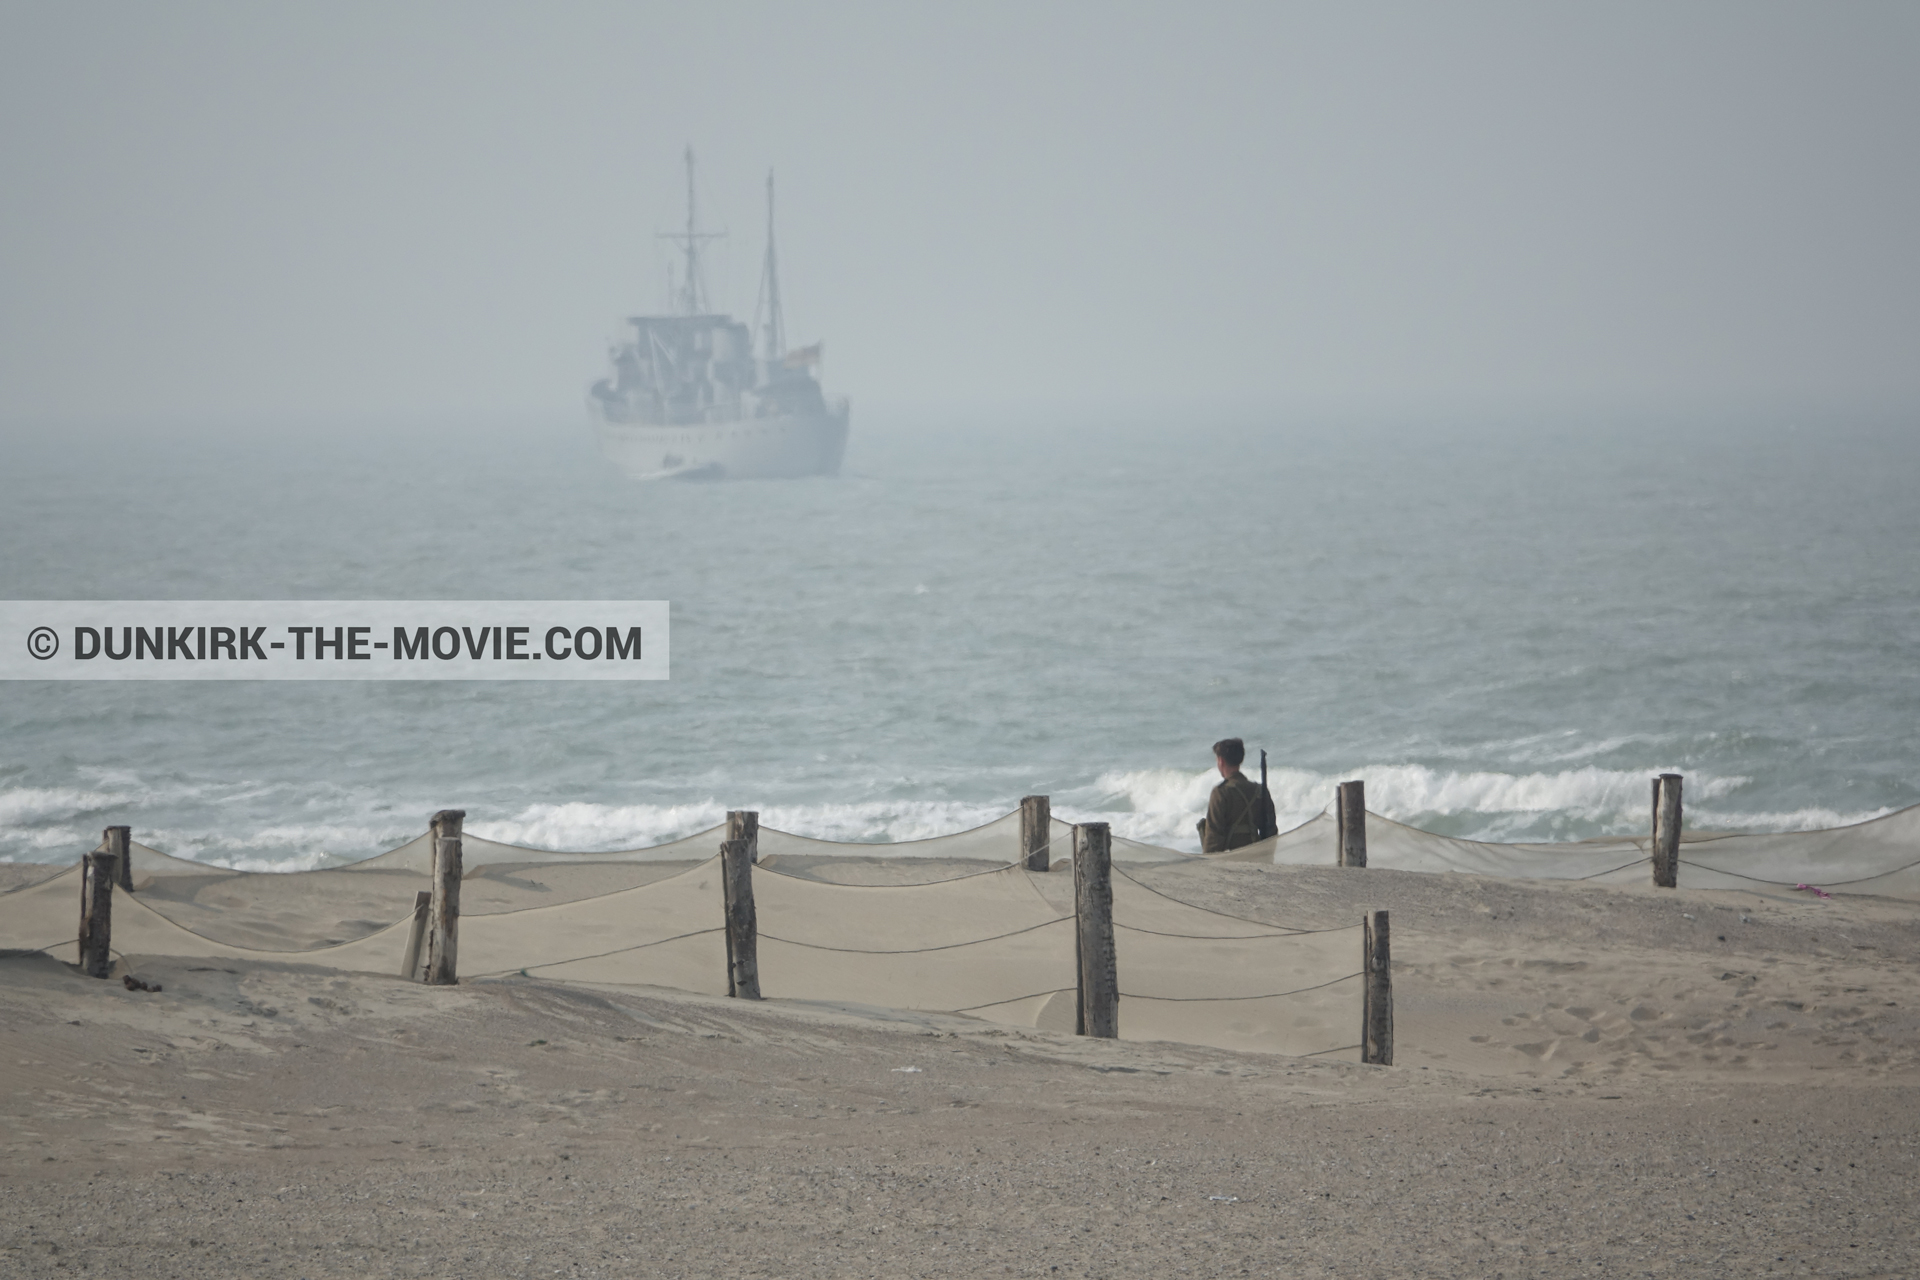 Picture with boat, grey sky, supernumeraries, rough sea, beach,  from behind the scene of the Dunkirk movie by Nolan